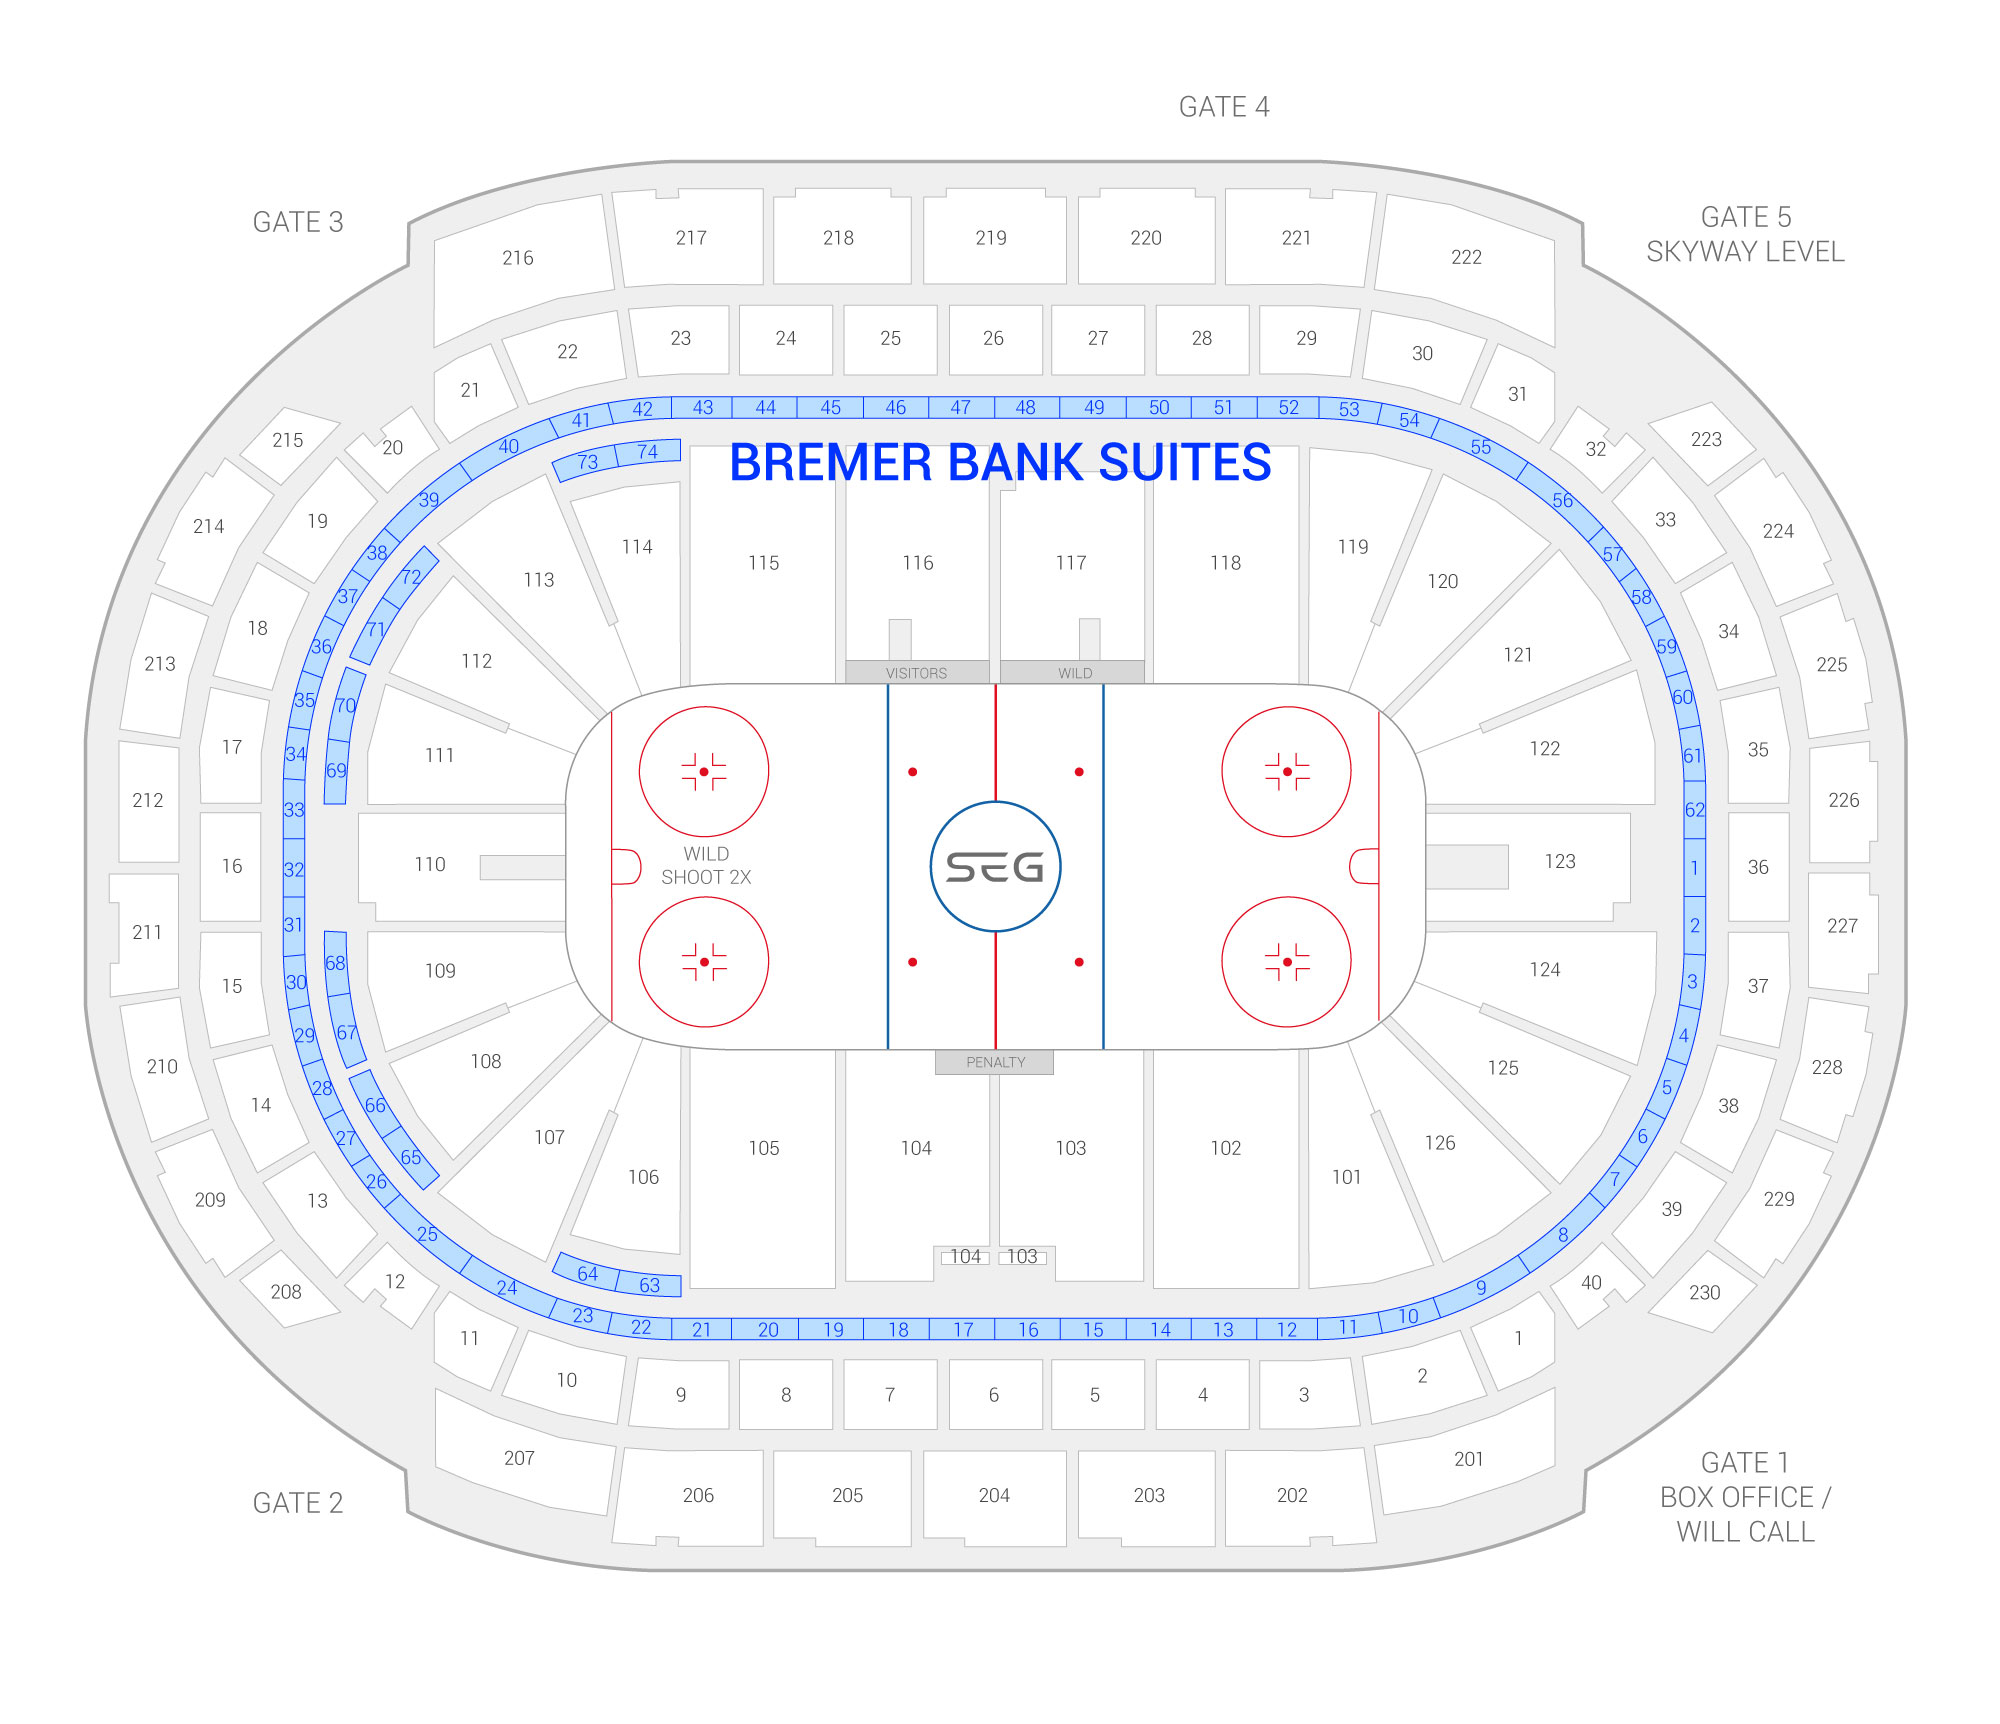 Xcel Energy Center / Minnesota Wild Suite Map and Seating Chart